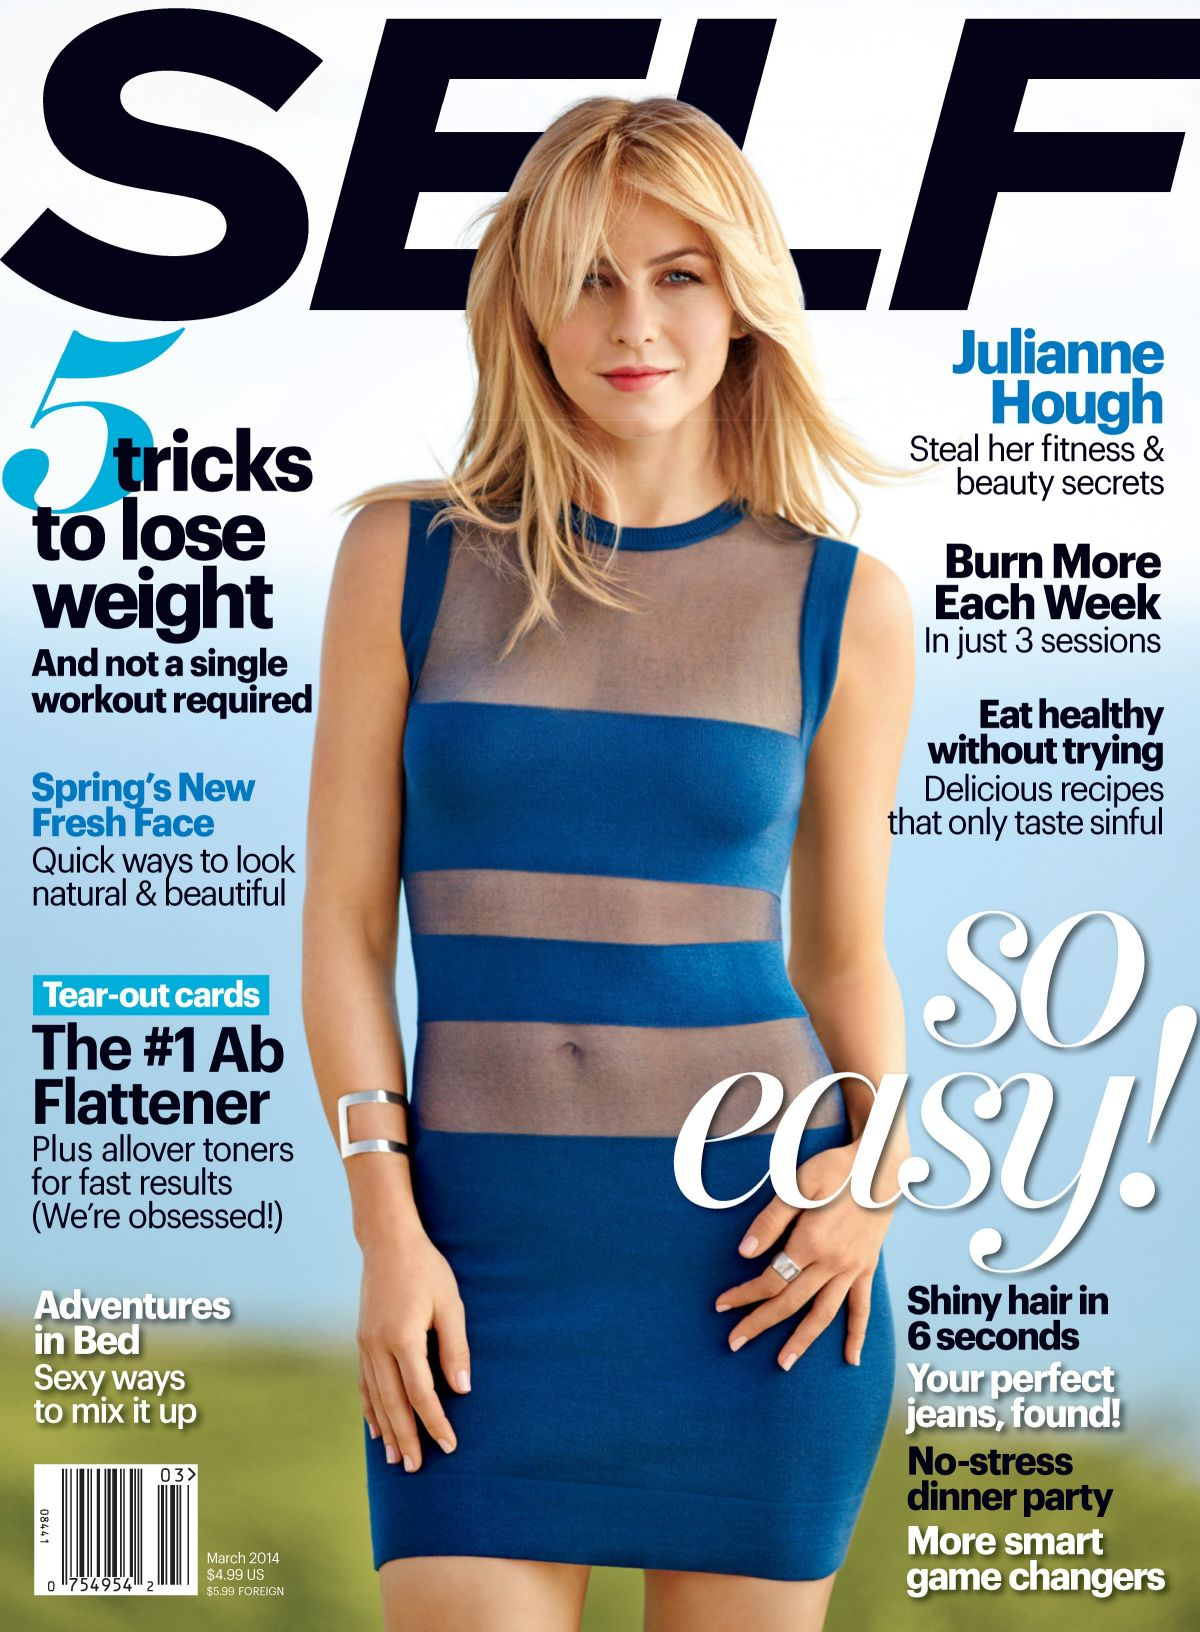 JULIANNE HOUGH on the Cover of Self Magazine, March 2014 Issue